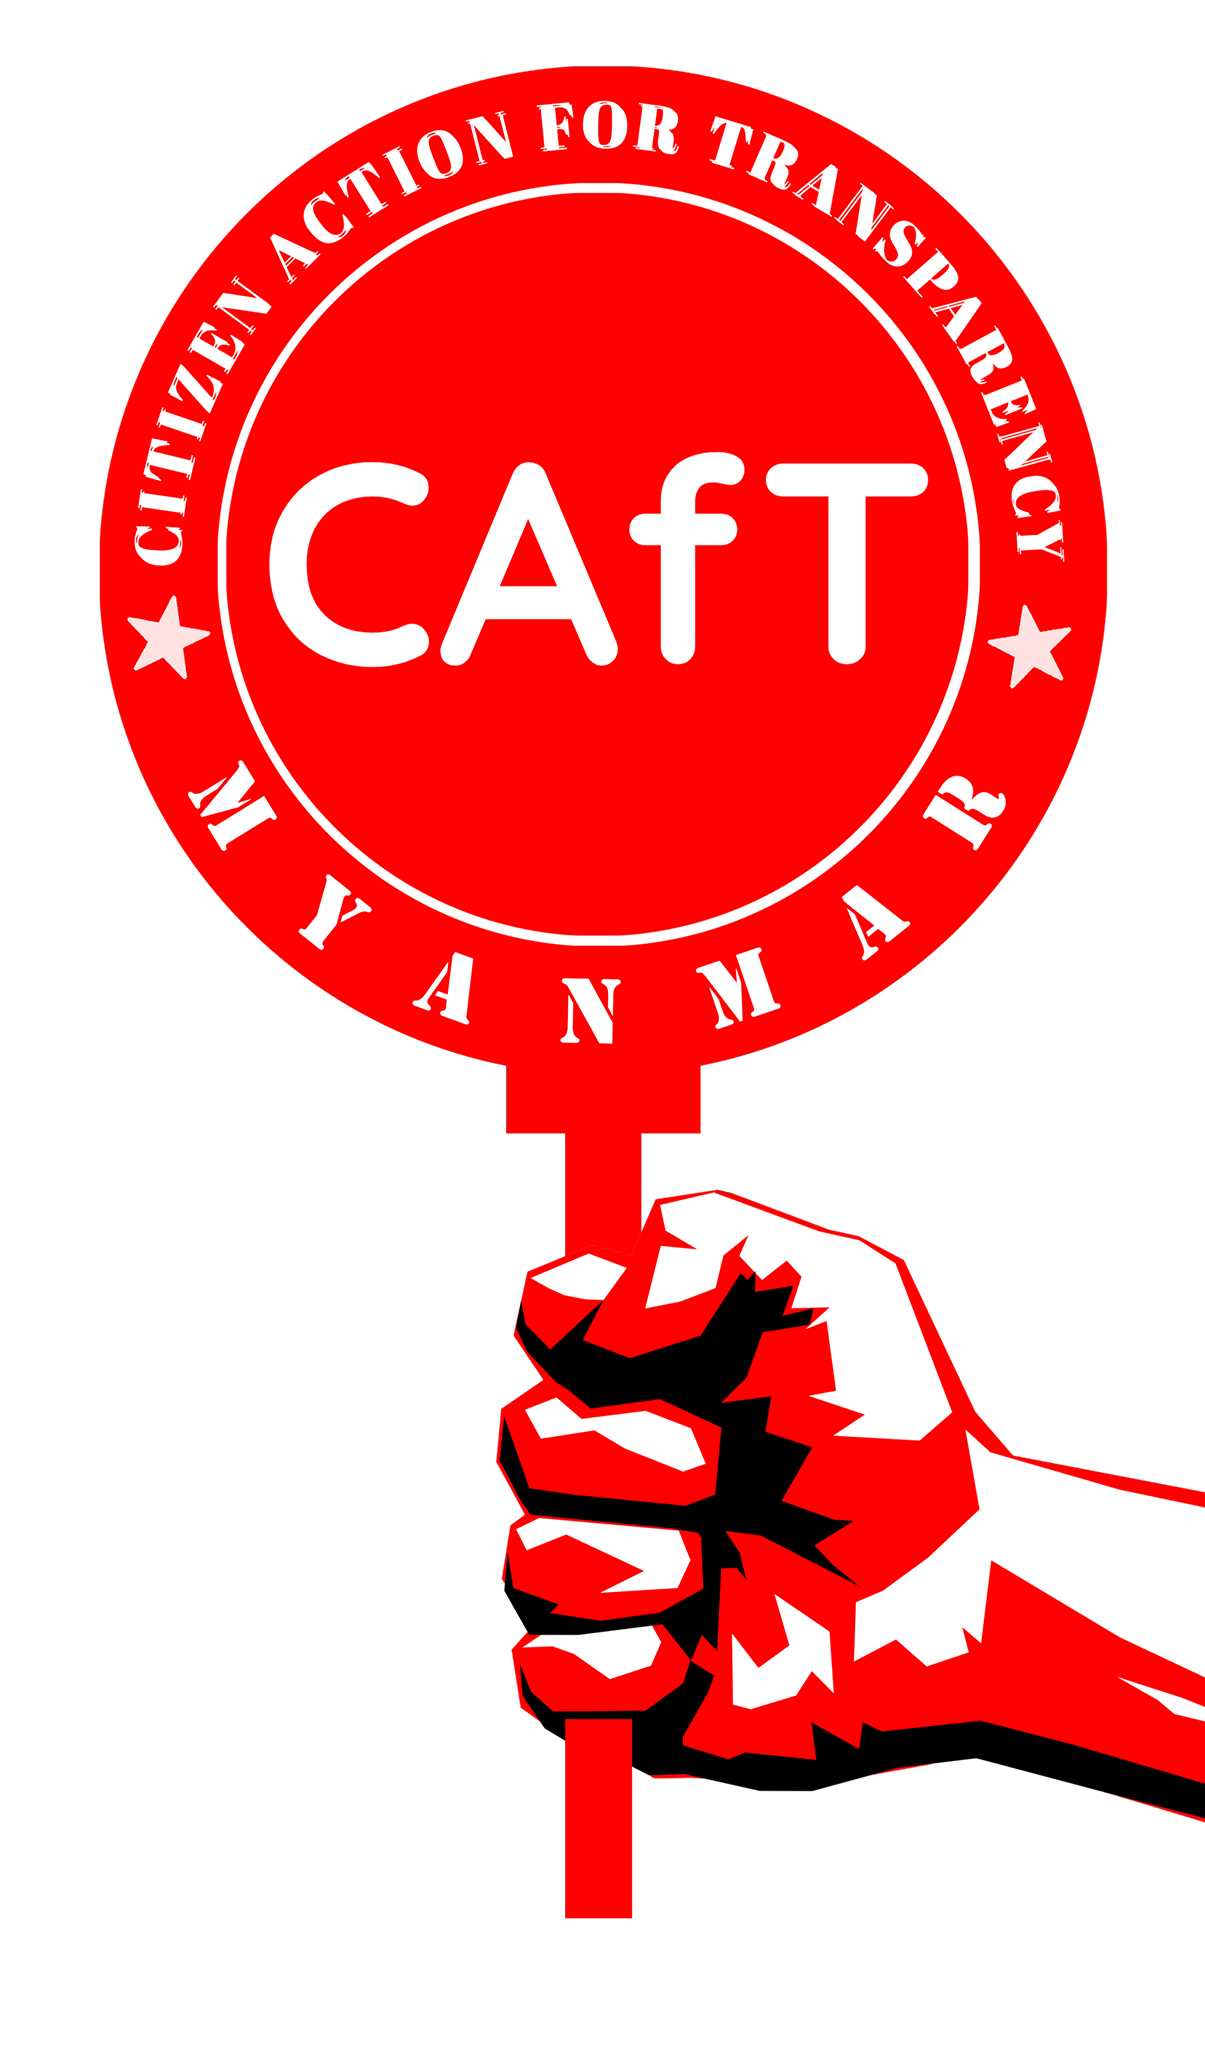 Citizen's Action for Transparency (CAFT)